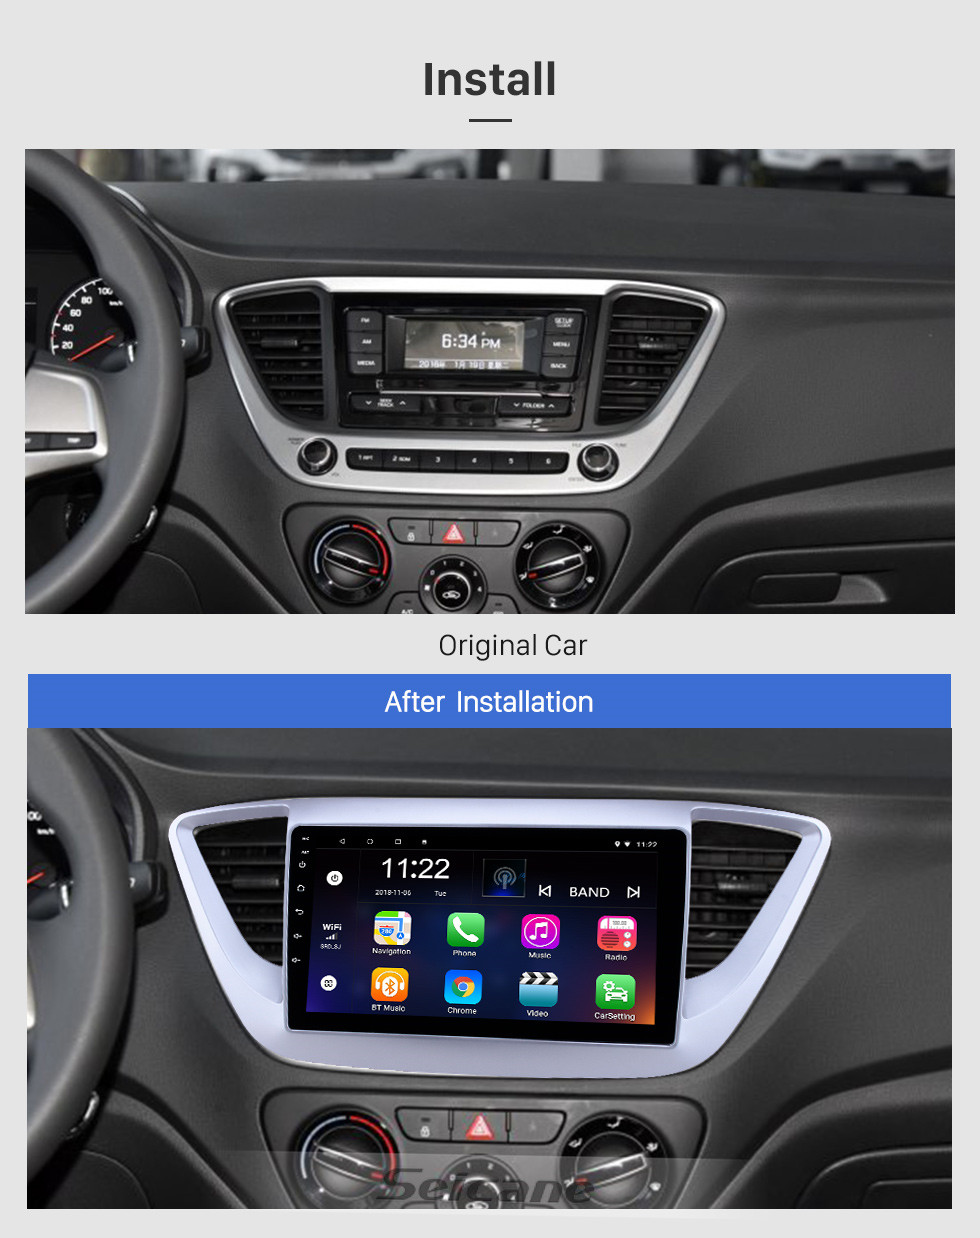 Seicane HD Touchscreen 9 inch Android 10.0 GPS Navigation Radio for 2016 Hyundai Verna with Bluetooth AUX Music support DVR Carplay OBD Steering Wheel Control